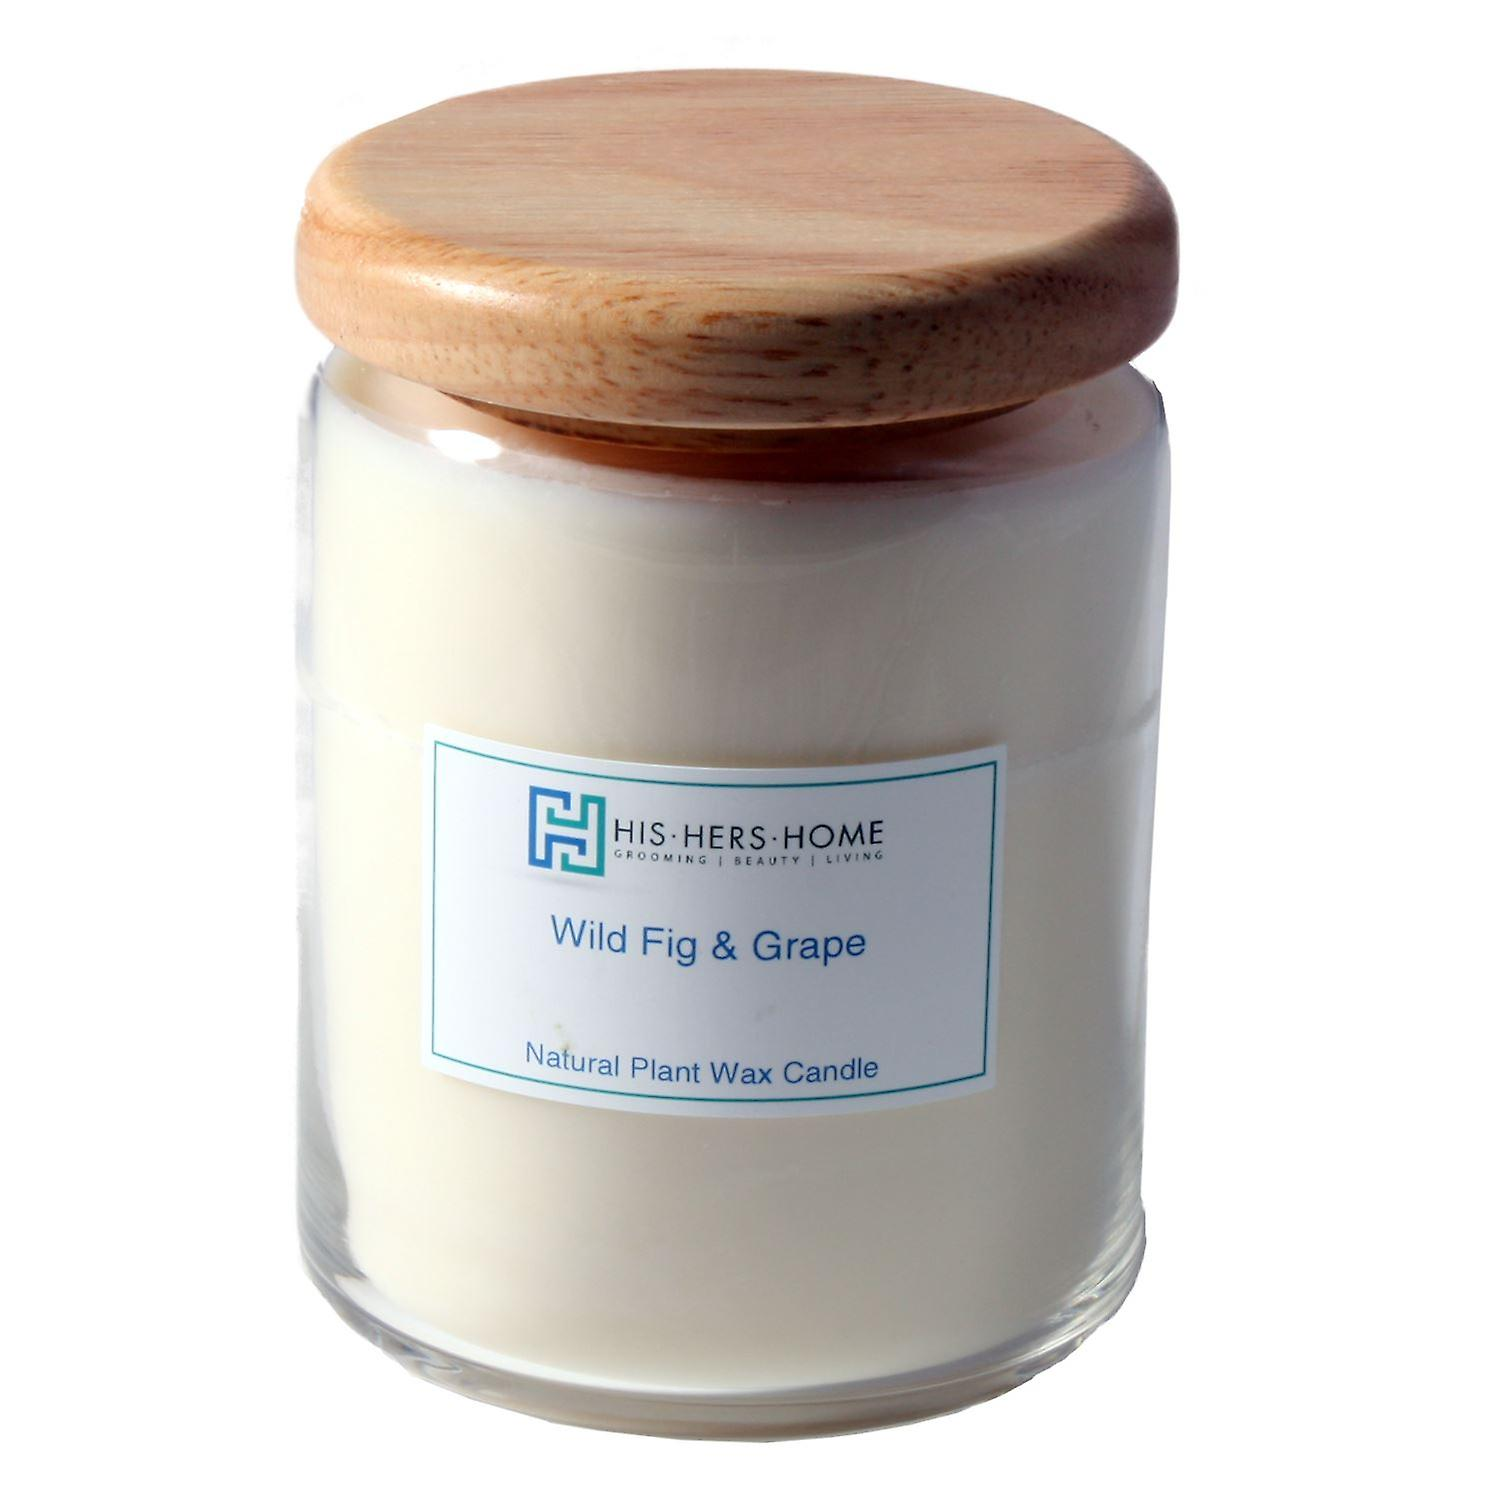 HisHersHome Natural Plant Wax Large Large Candle - Wild Fig & Grape